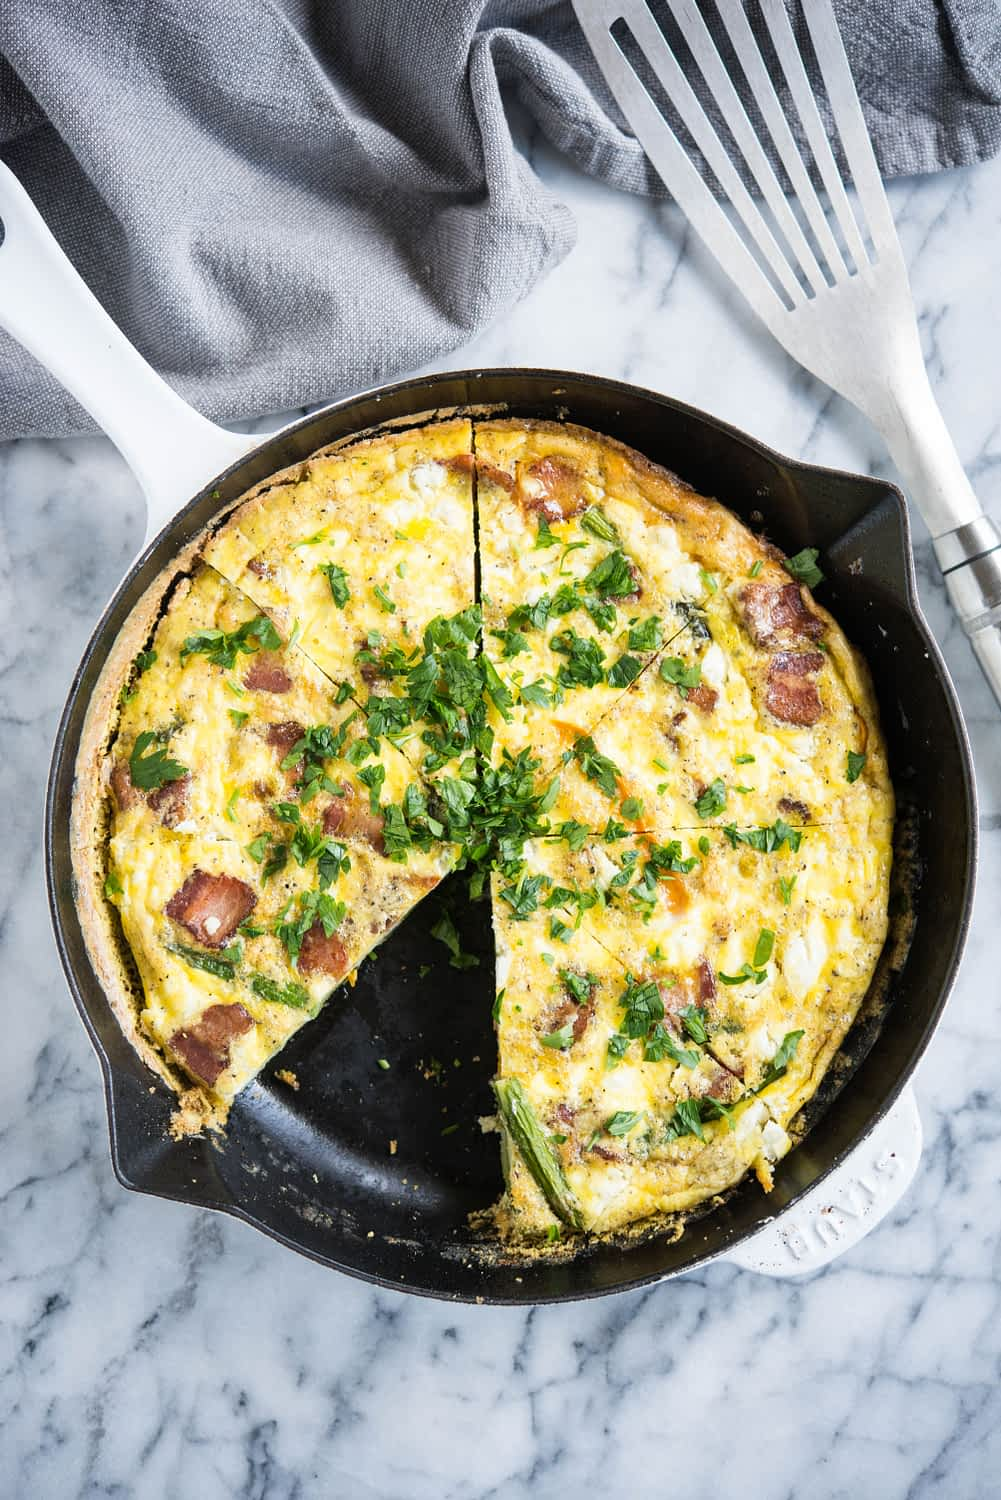 goat cheese and veggie frittata in a cast iron pan on a marble board with a grey napkin